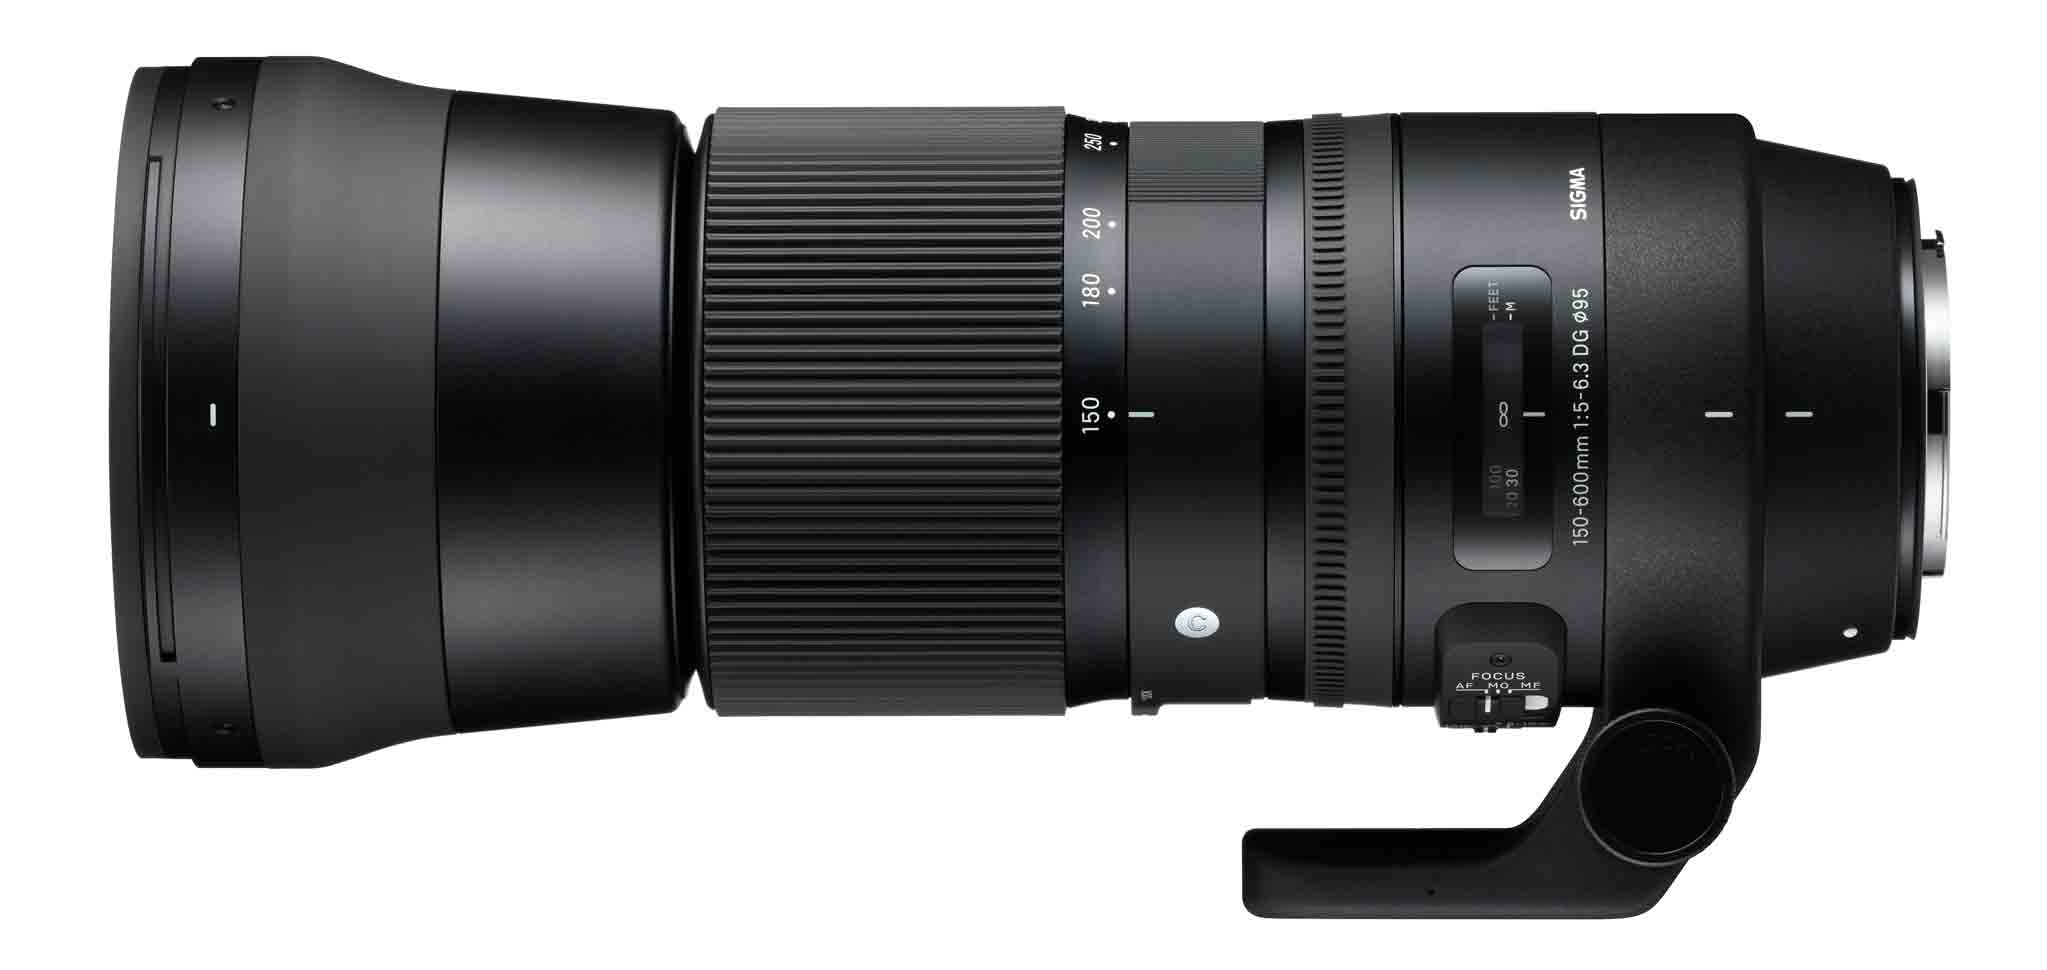 Sigma's 150-600mm F/5-6.3 DG OS HSM Contemporary is aimed at enthusiasts rather than pro photographers.